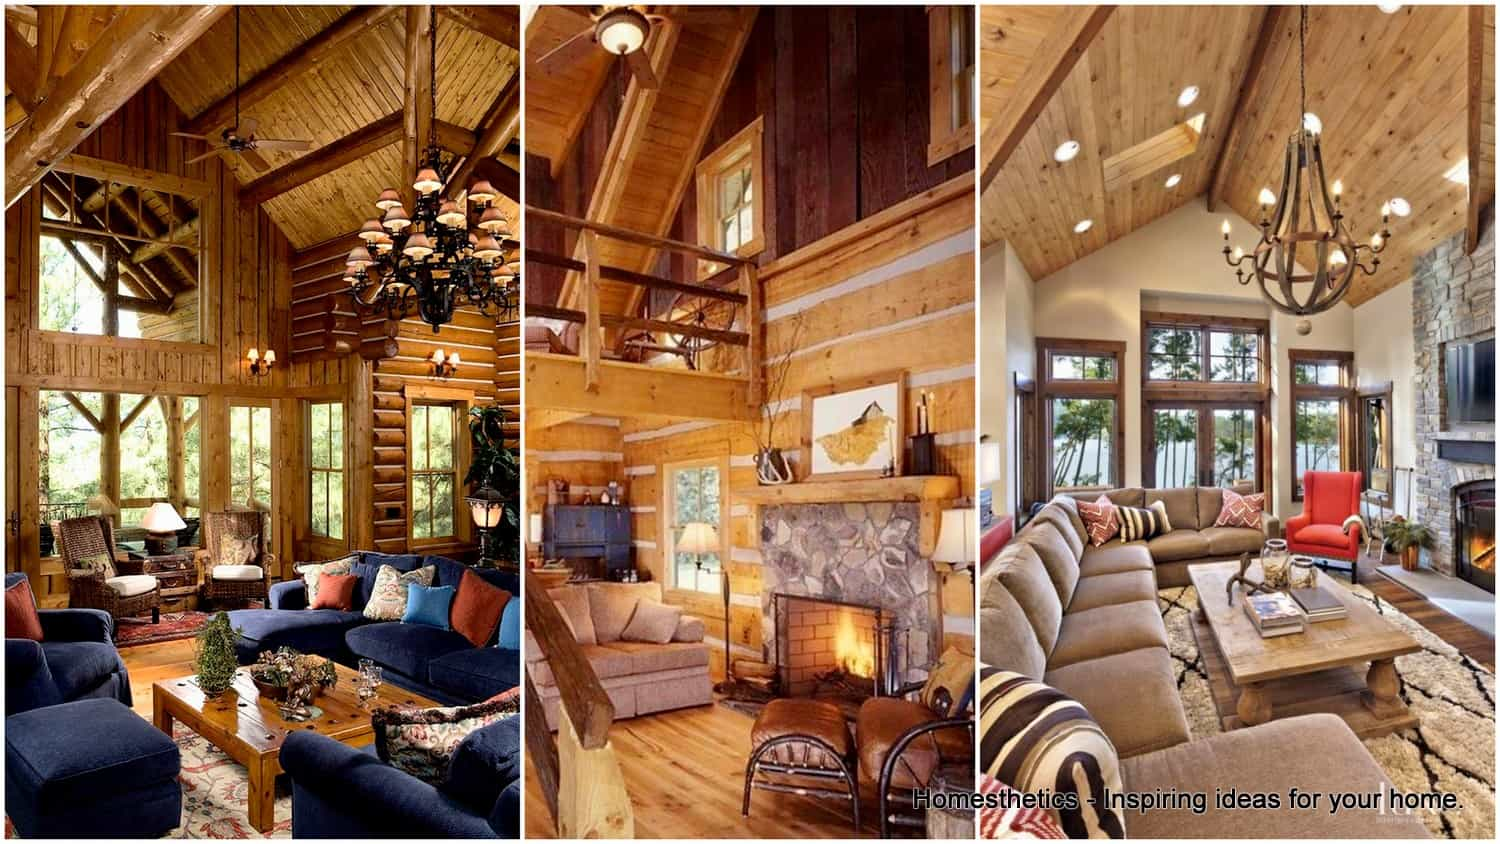 20 Breathtaking Mountain Cabins That Will Take You To A Different World